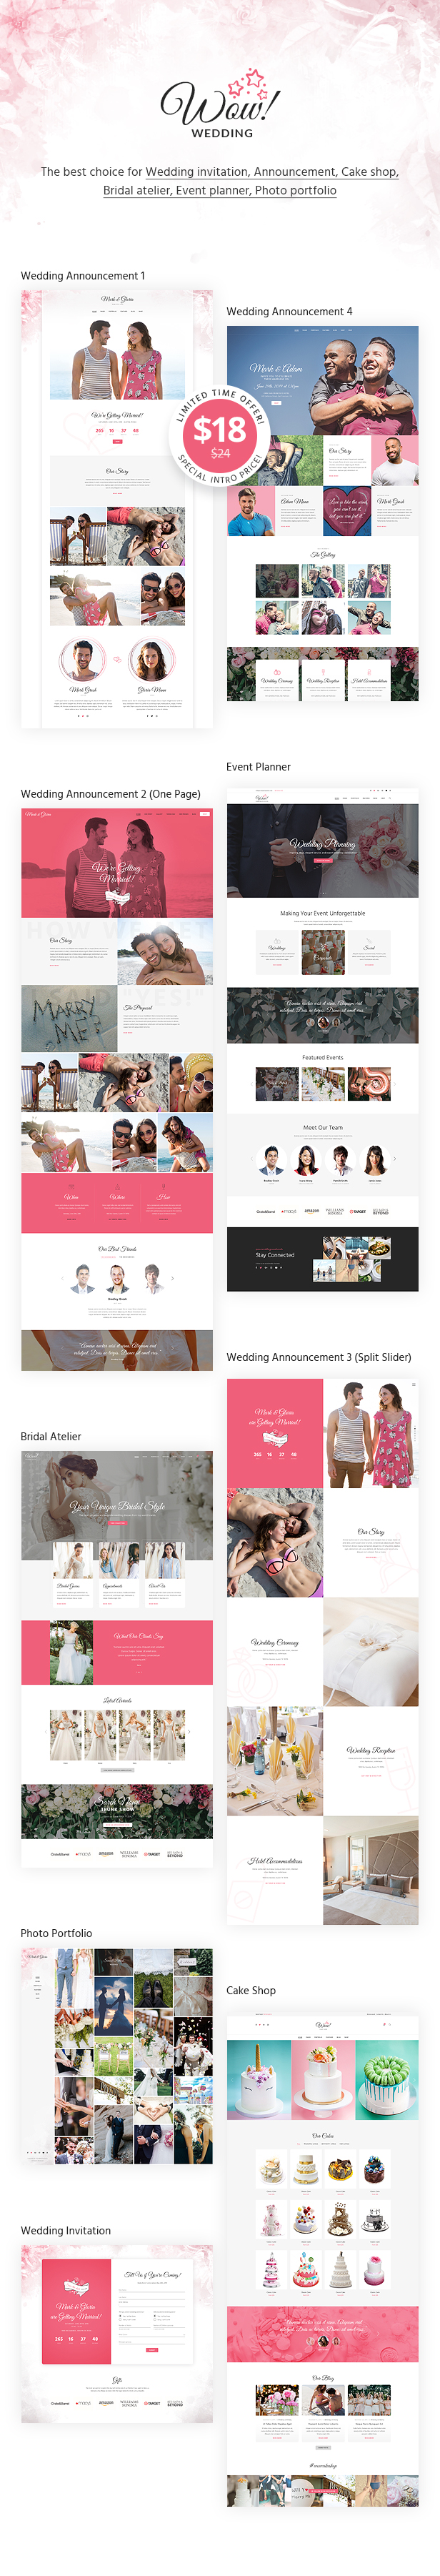 WoWedding - Wedding Oriented HTML Website Template - 1